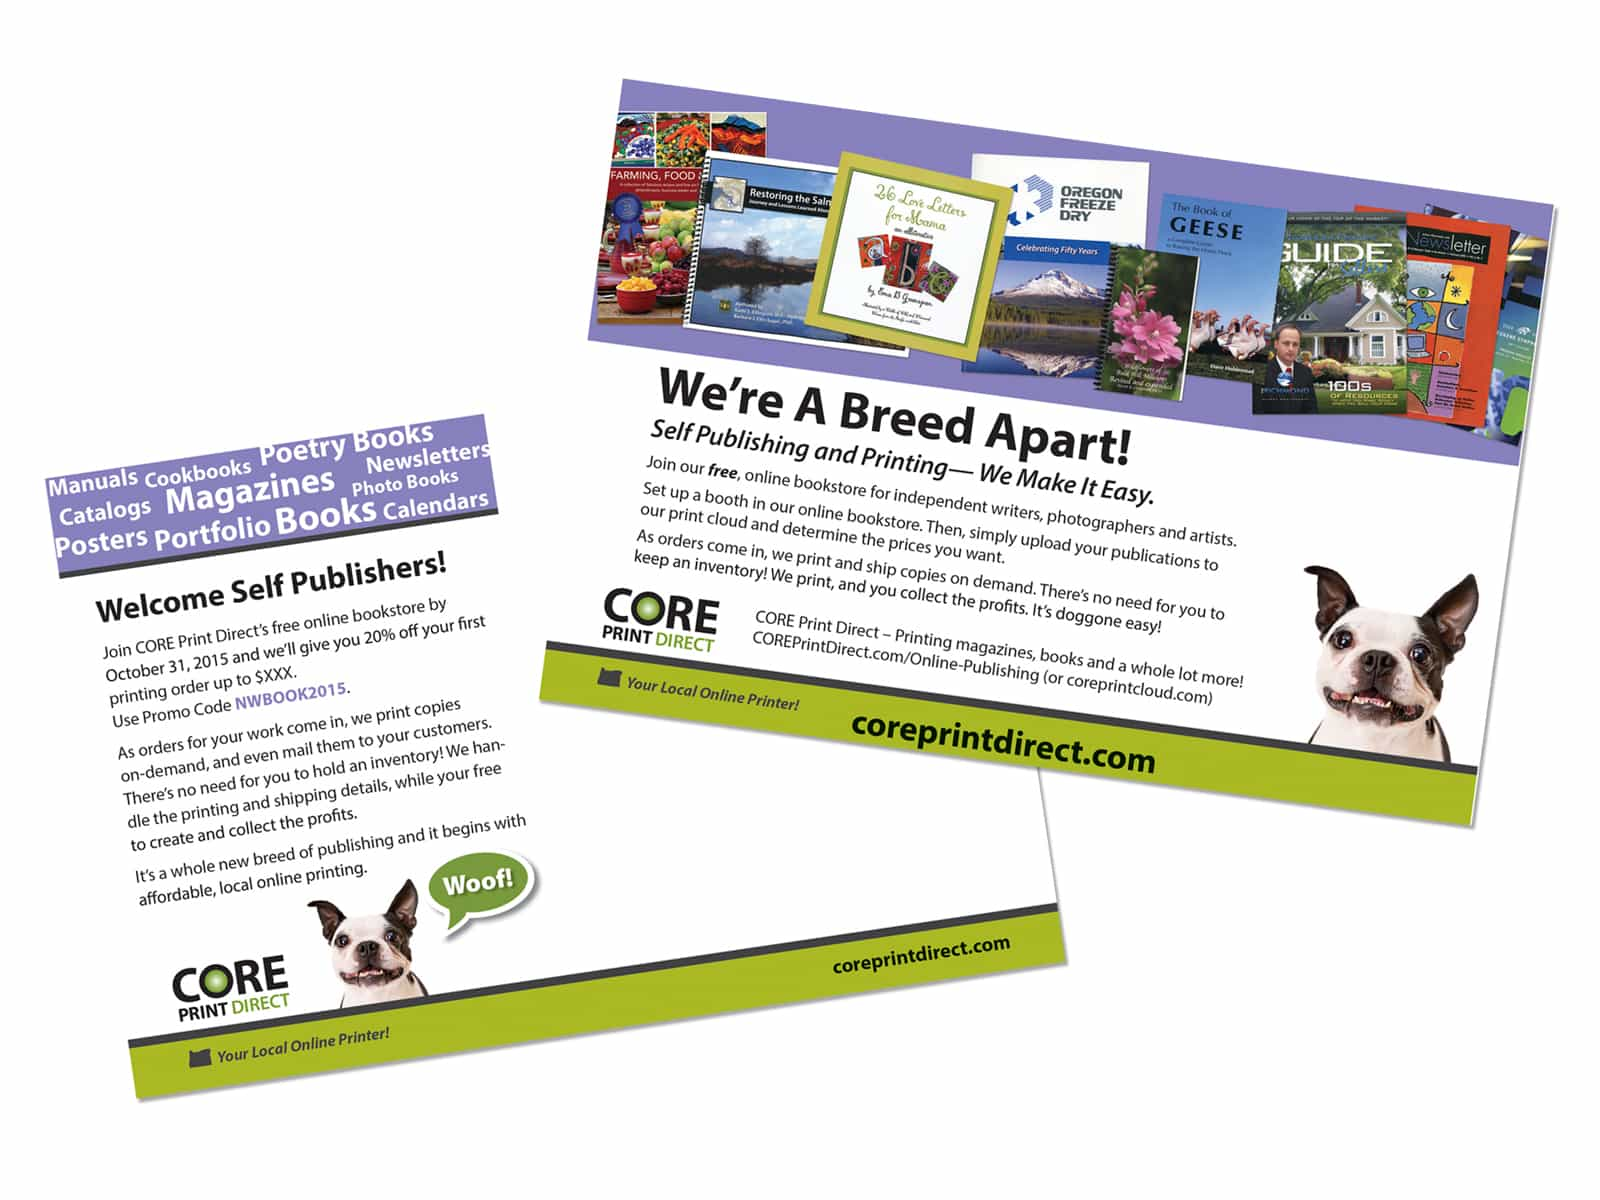 Graphic Design of Postcard Mailer promoting printer's online publishing capability